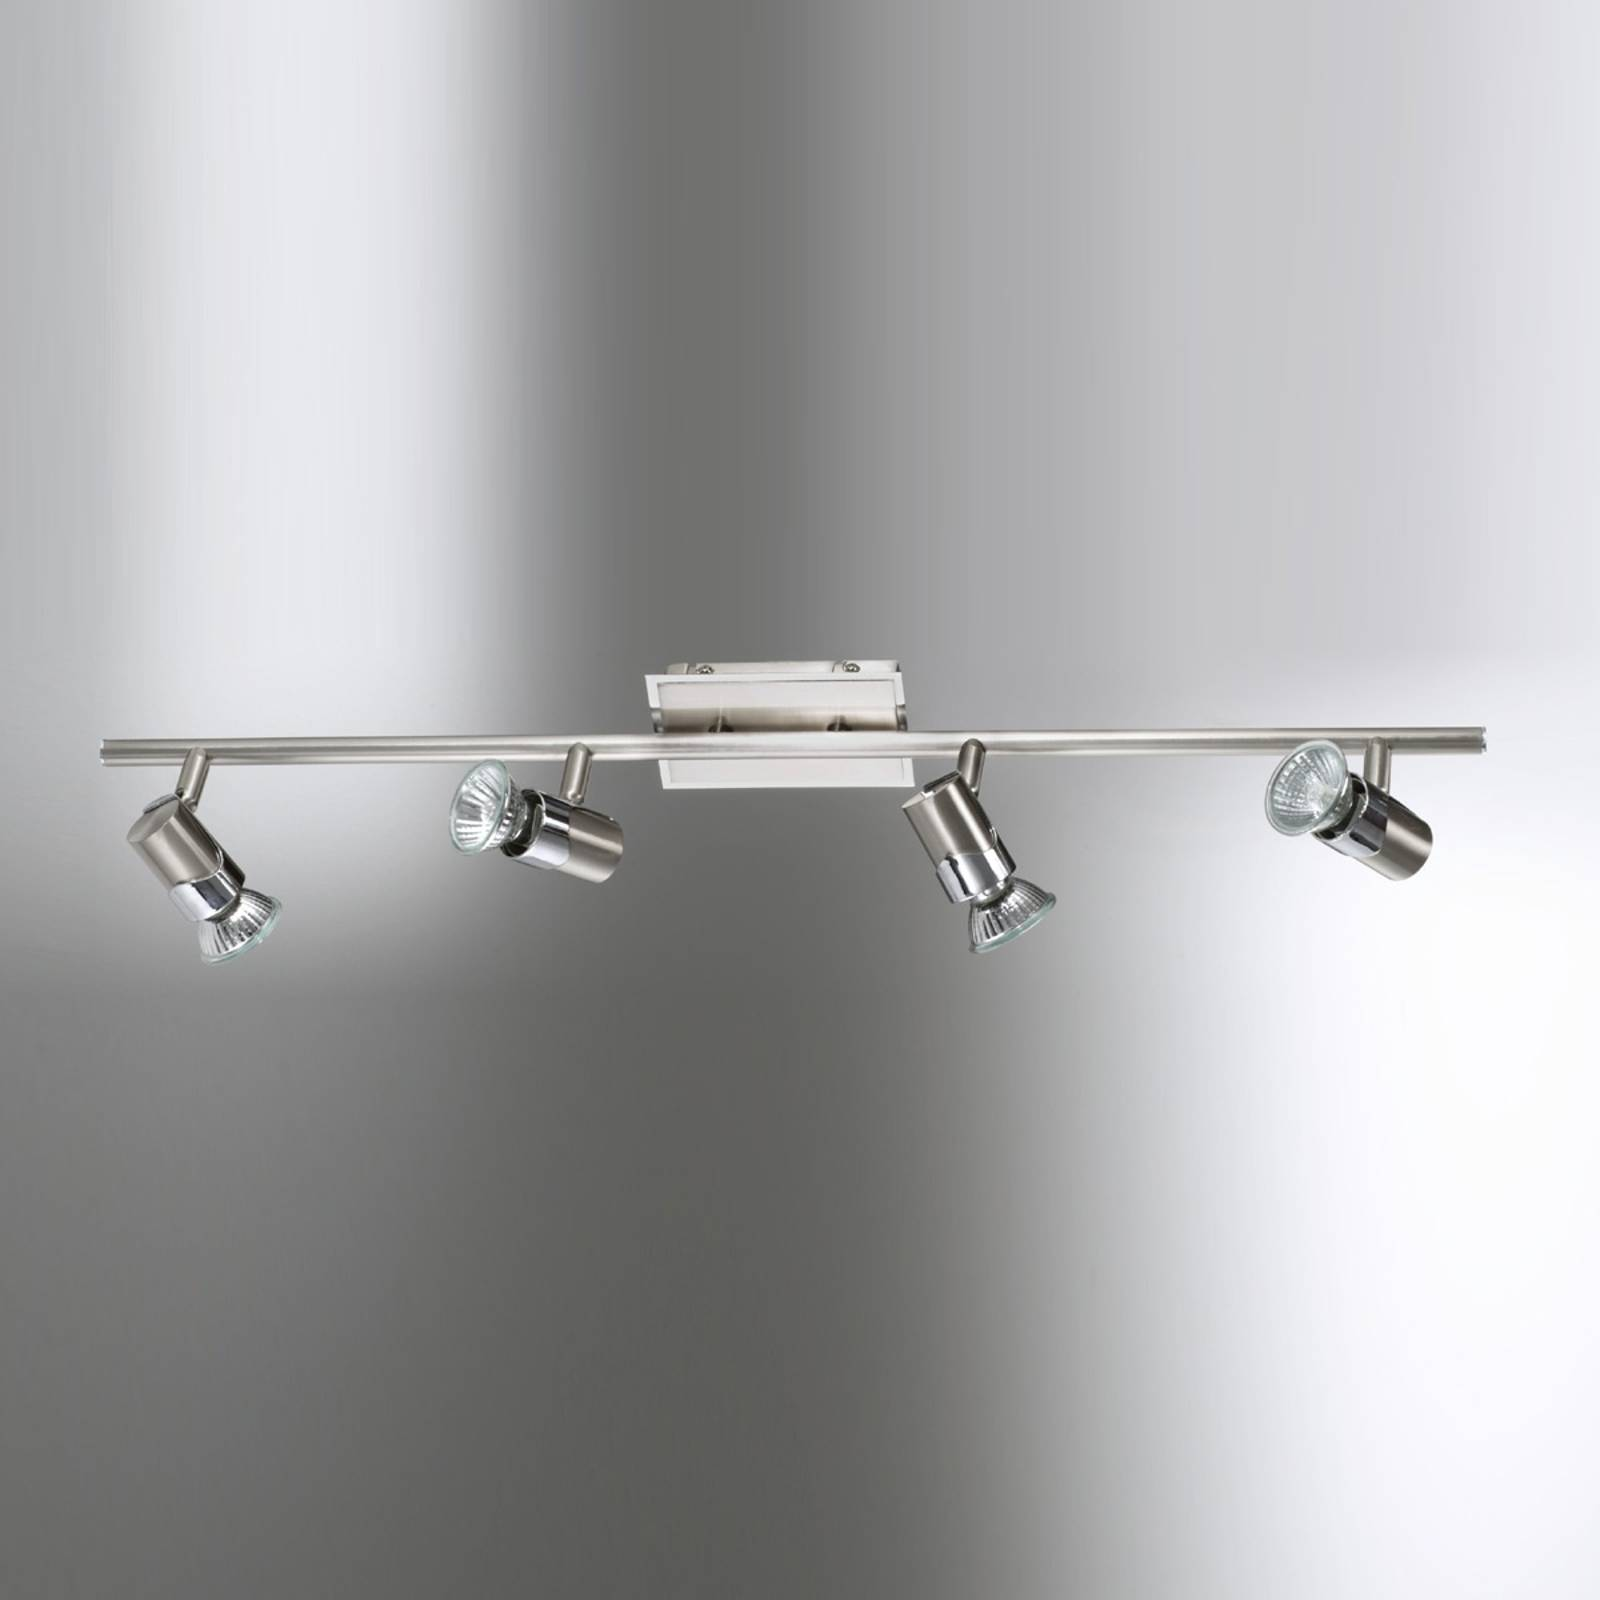 Ceiling light ALICE in a modern design from Fabas Luce